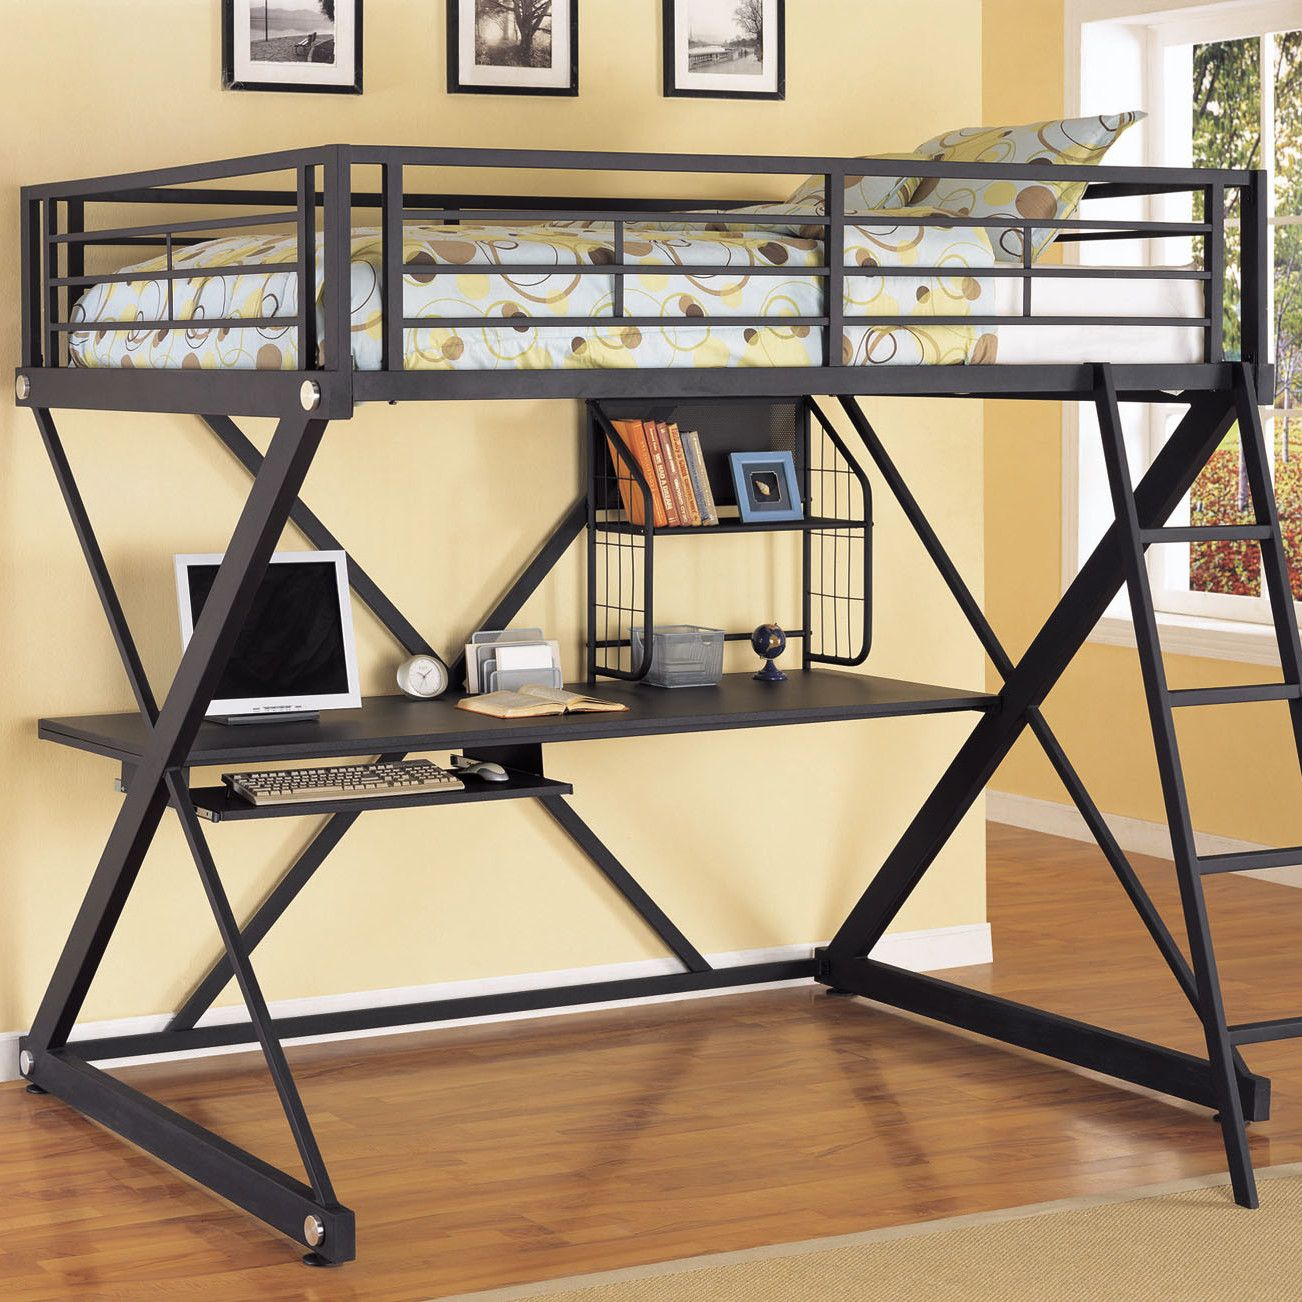 lea cross crossover beds loft lb desk furniture bed elite industries with